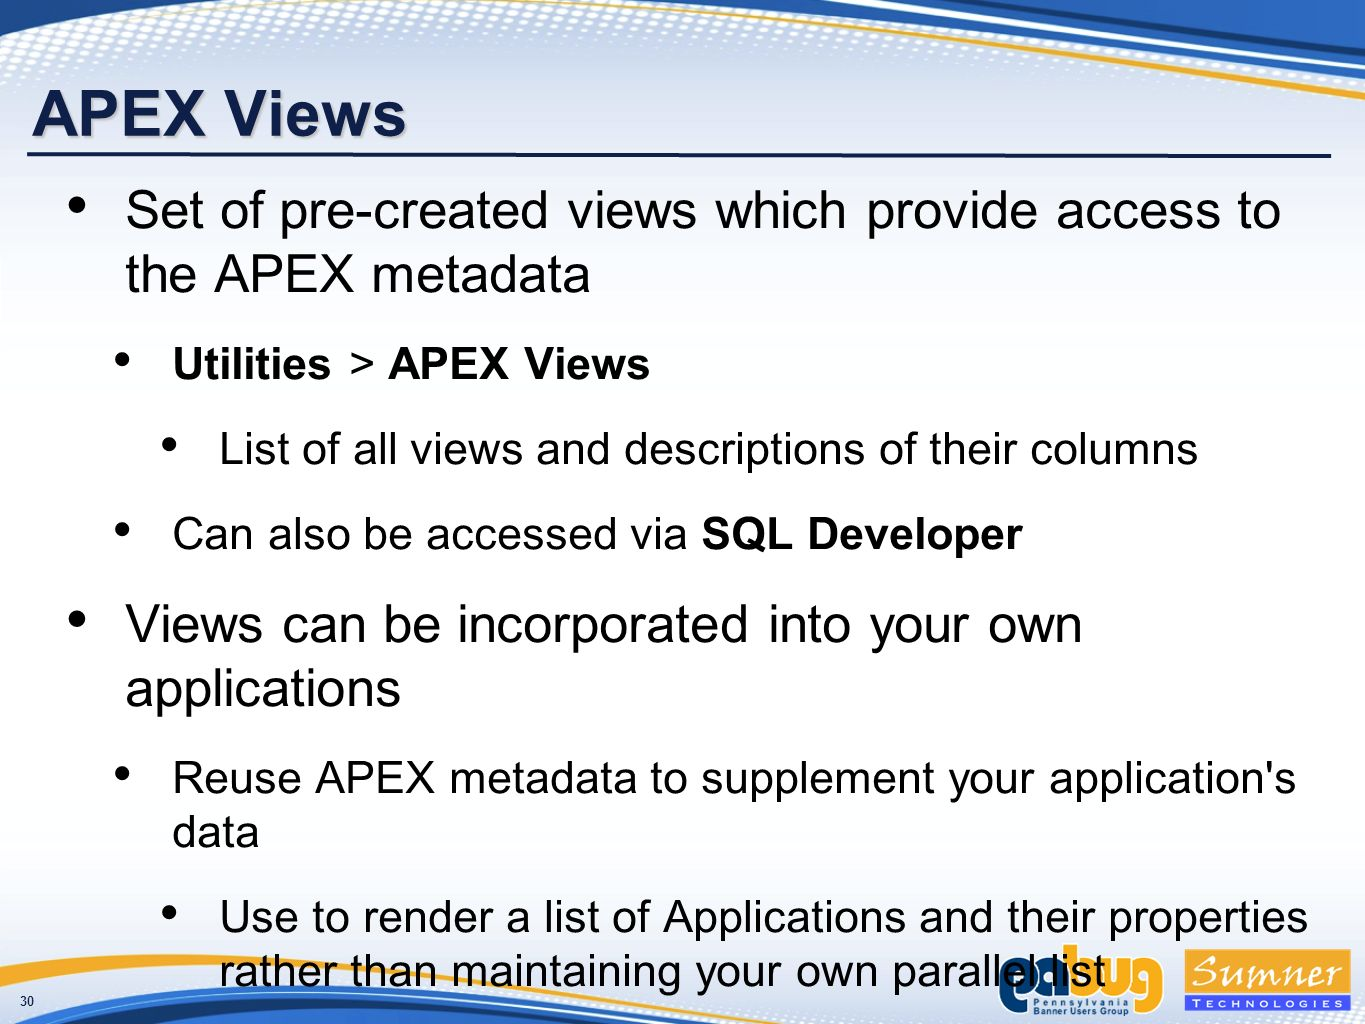 30 APEX Views Set of pre-created views which provide access to the APEX metadata Utilities > APEX Views List of all views and descriptions of their columns Can also be accessed via SQL Developer Views can be incorporated into your own applications Reuse APEX metadata to supplement your application s data Use to render a list of Applications and their properties rather than maintaining your own parallel list